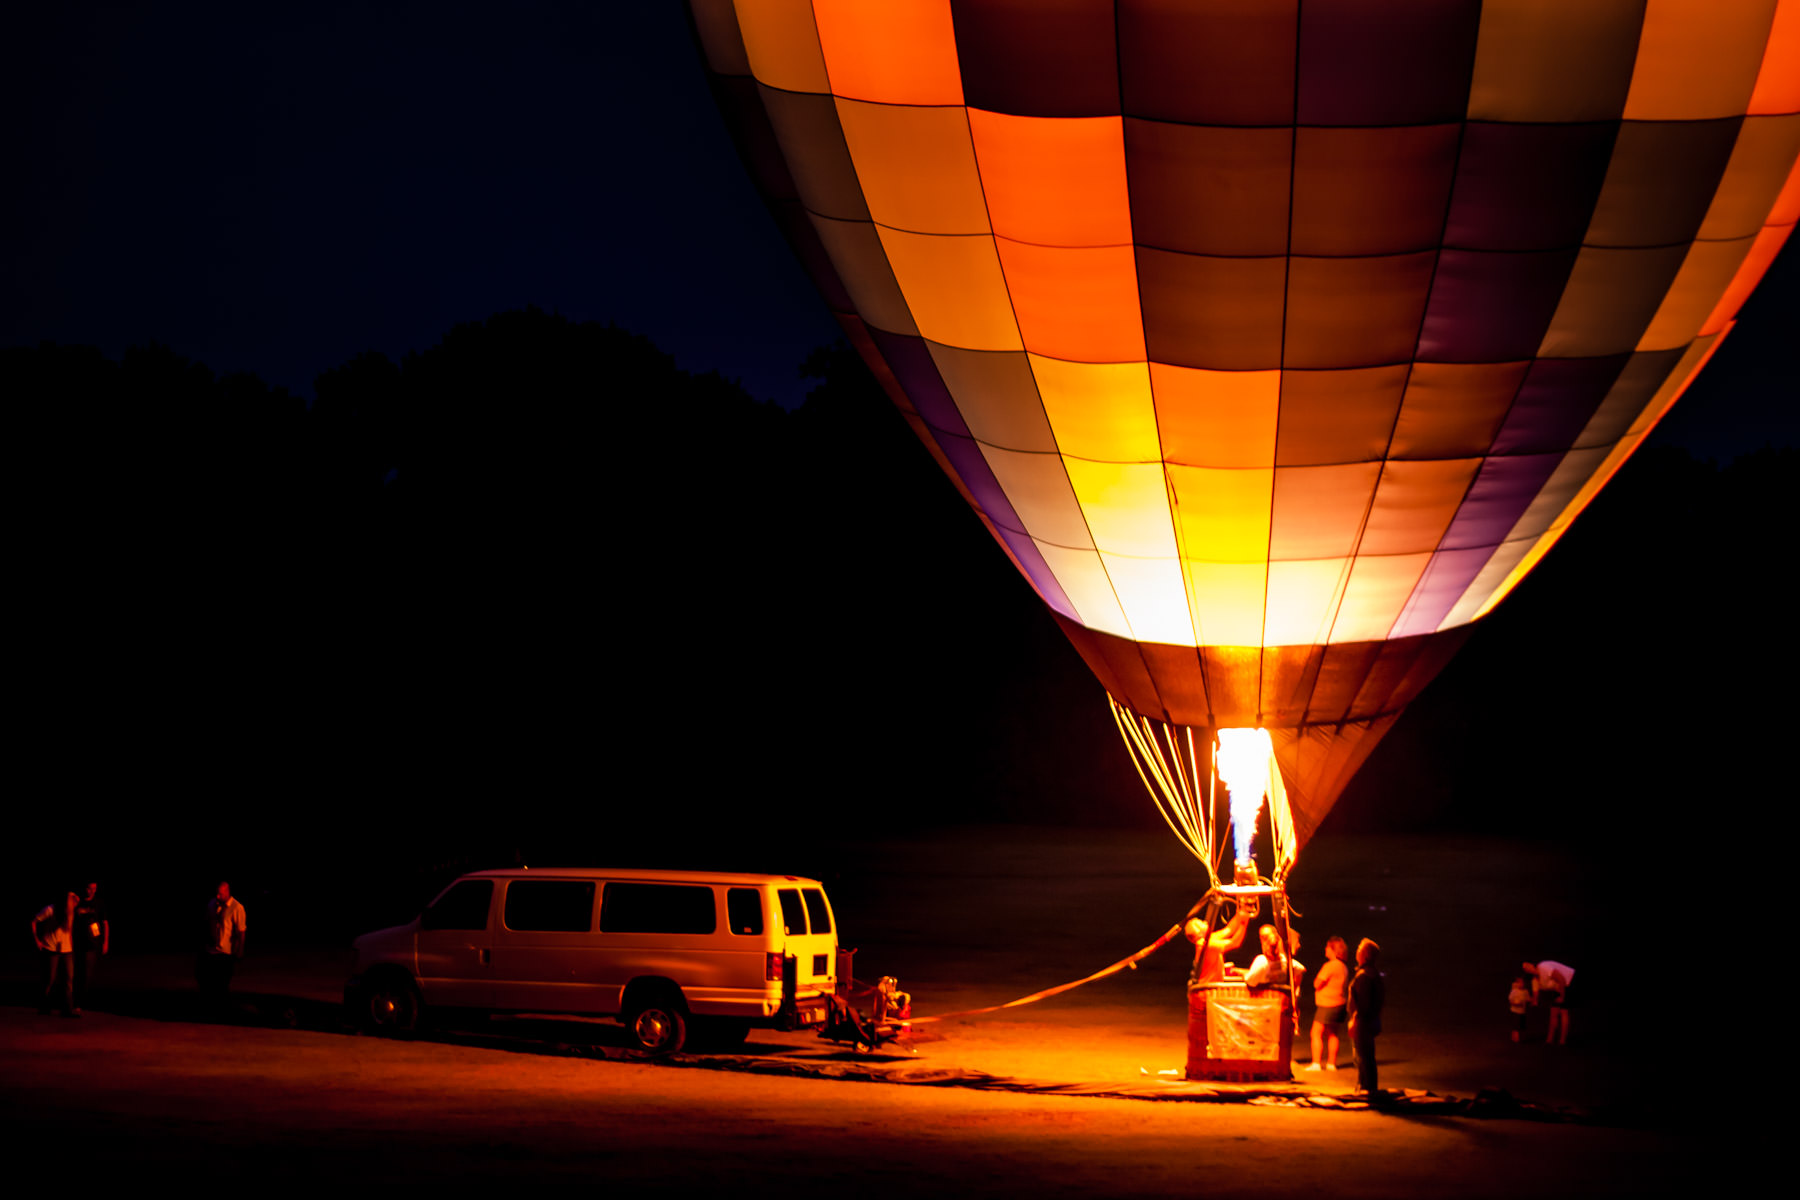 A balloon glows at the Plano Balloon Festival, Texas.